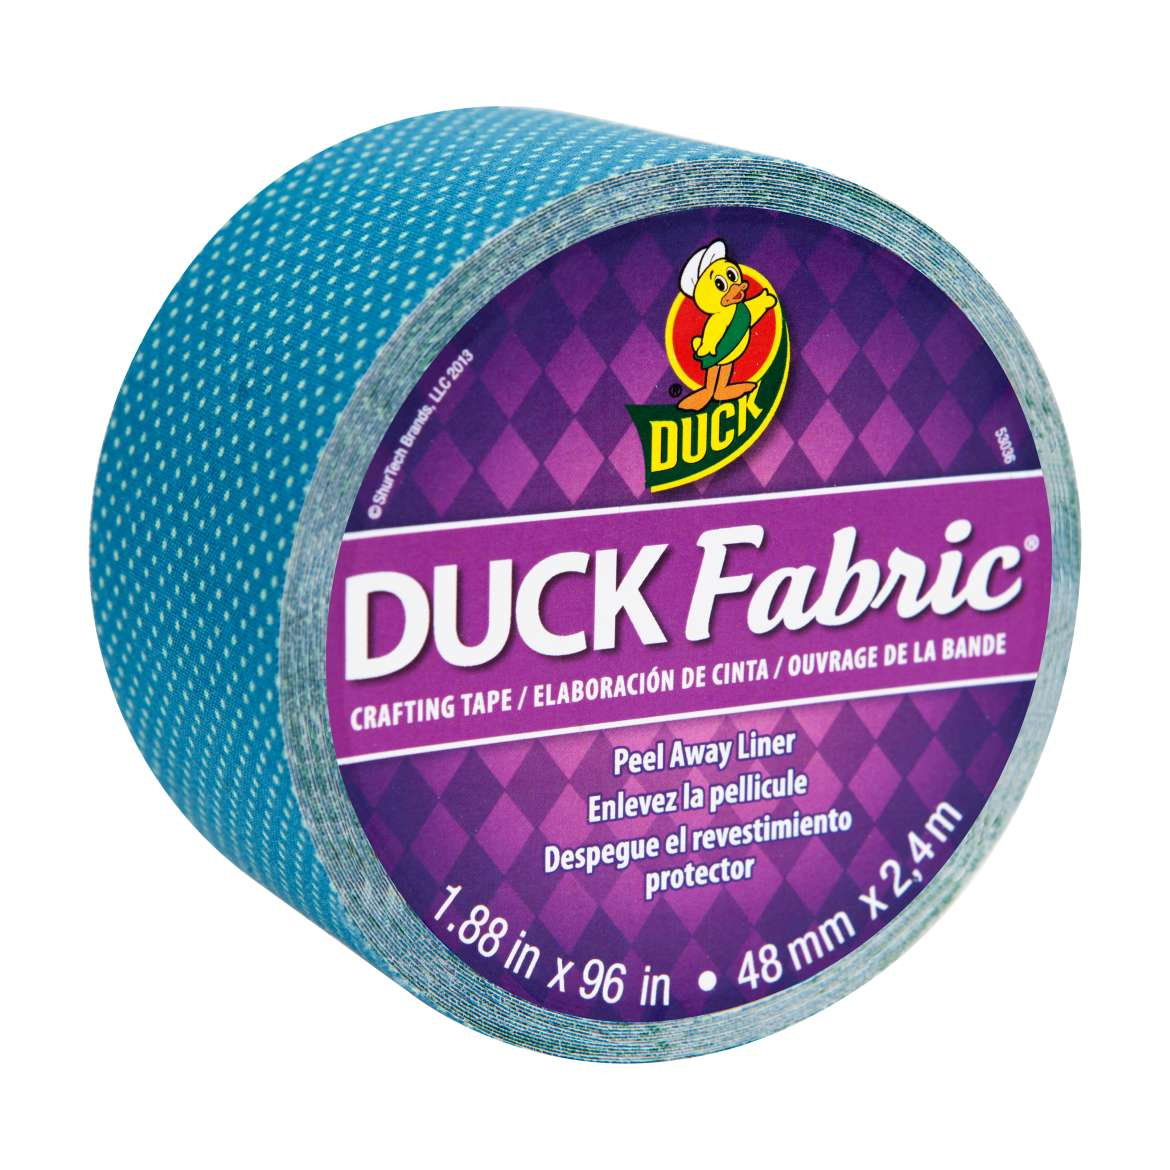 "Duck Brand Fabric Tape, 1.88"" x 96 inches, Blue Dot"